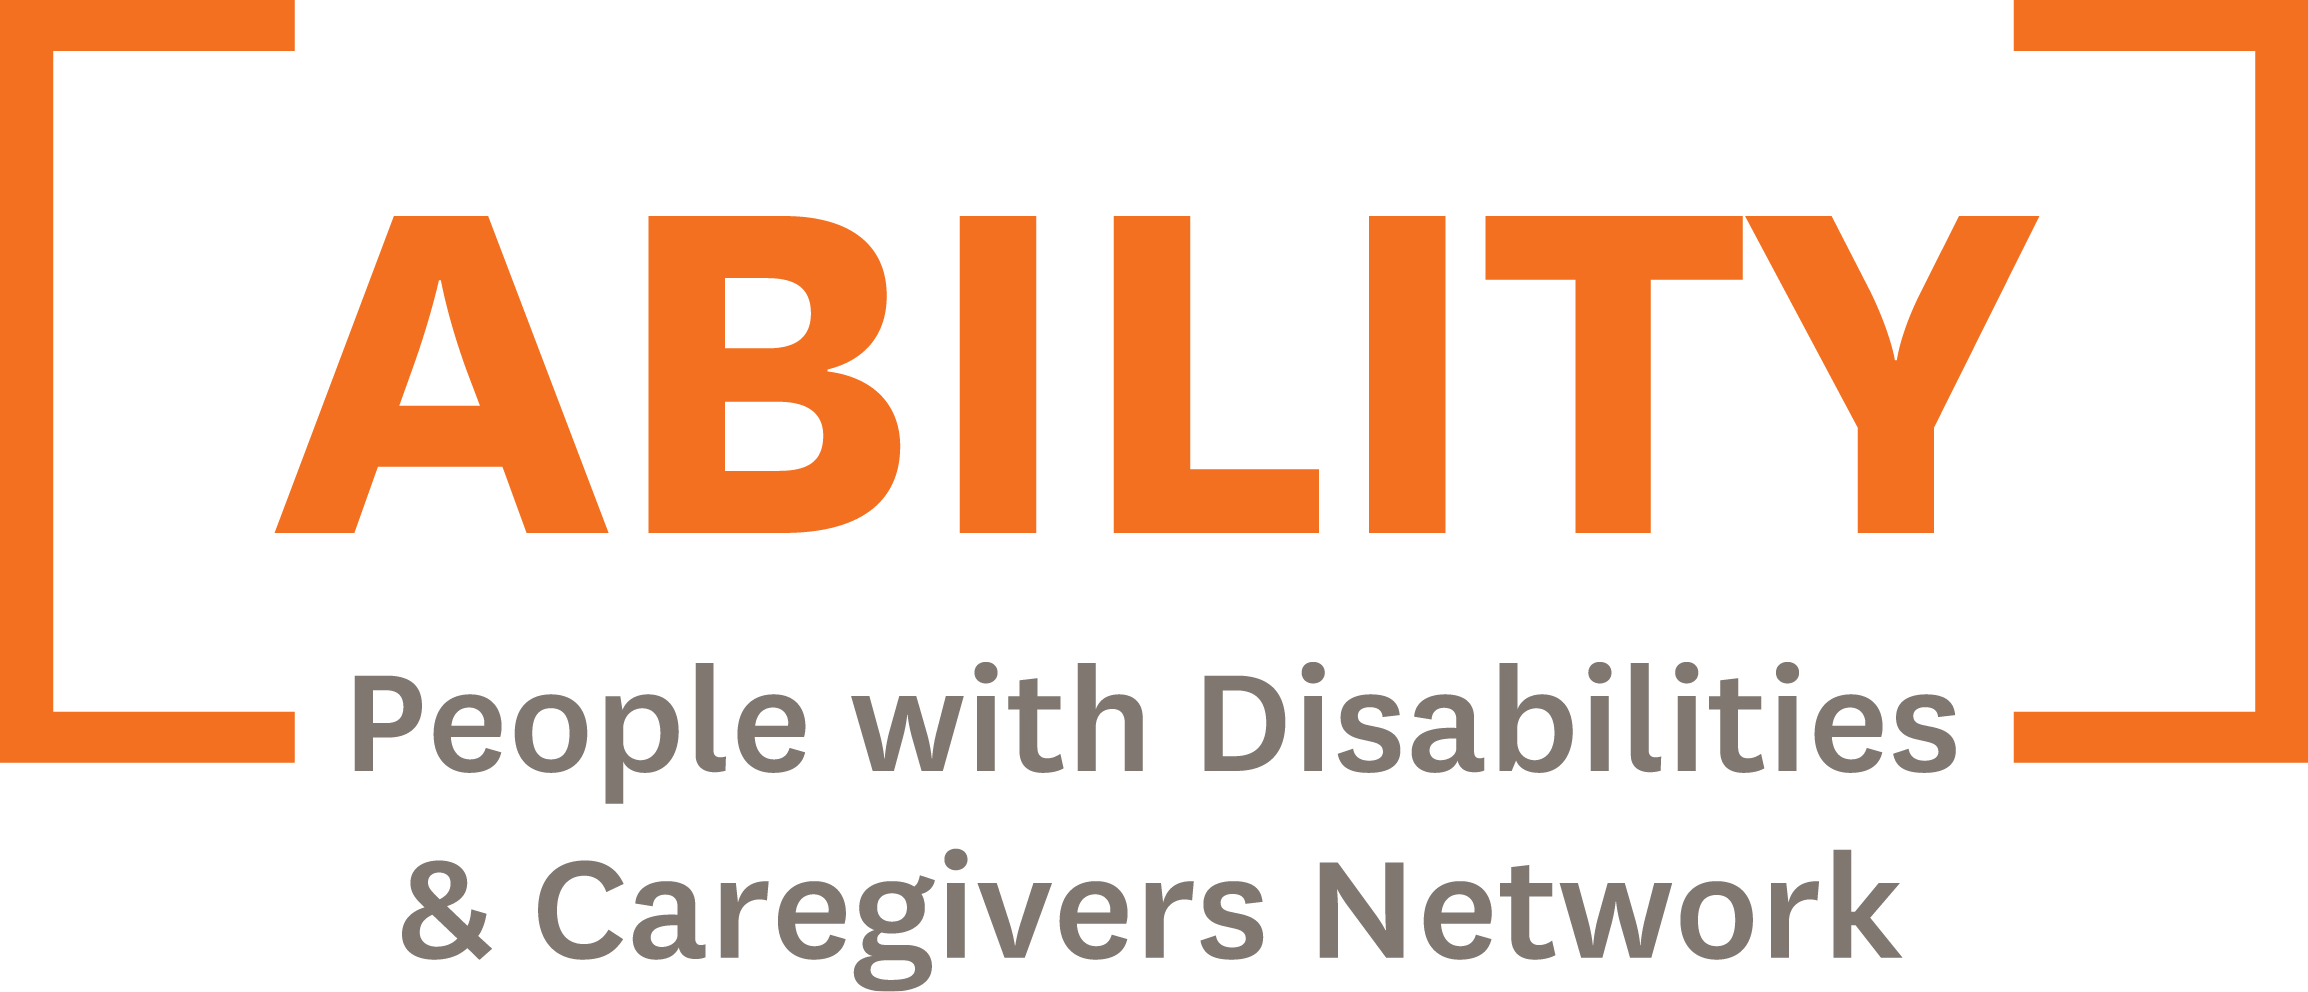 ABILITY People with Disabilities & Caregivers Network